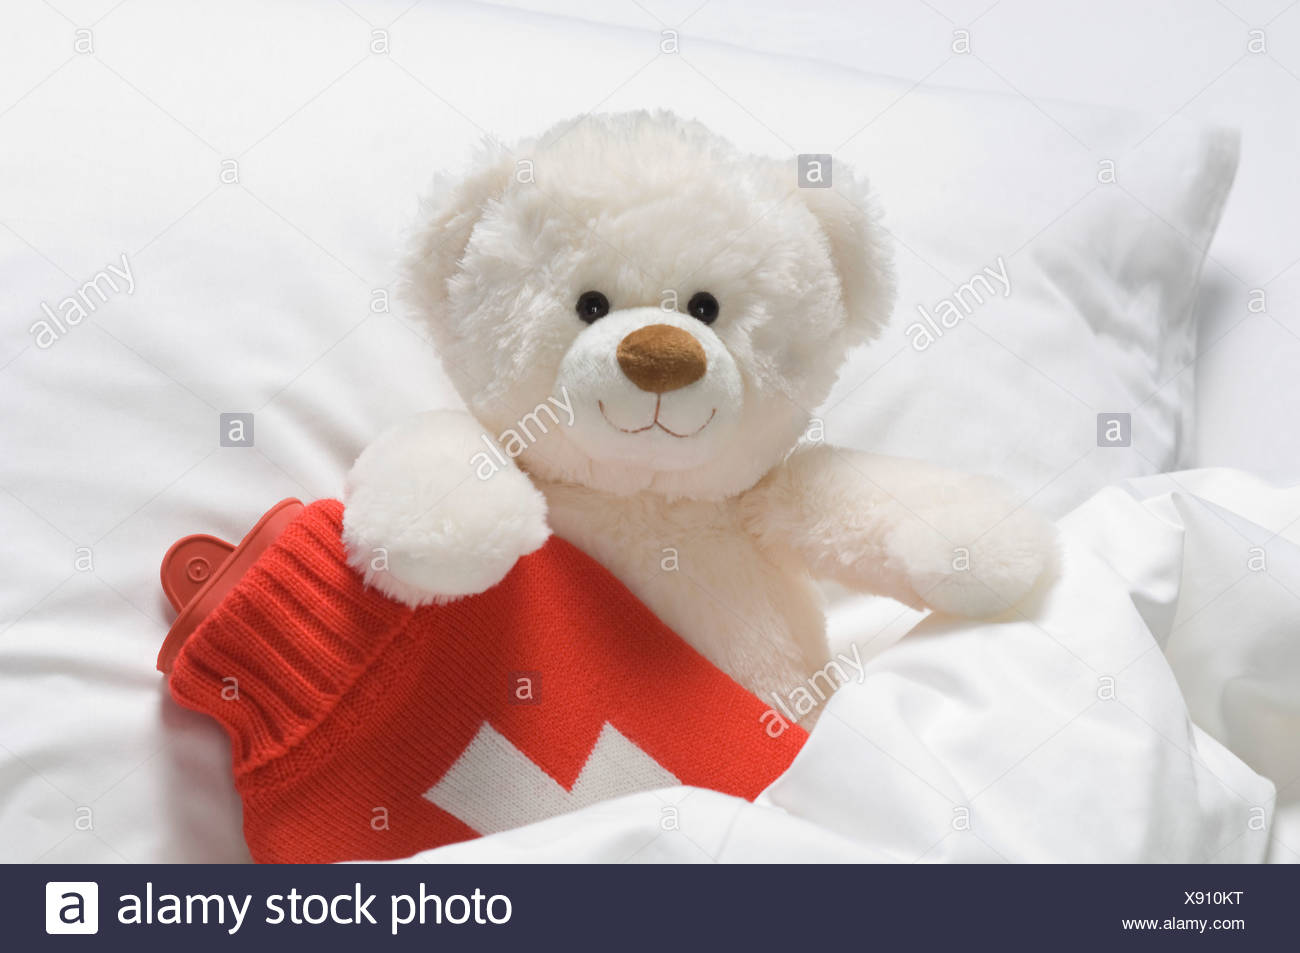 Teddy bear with hot water bottle on bed - Stock Image